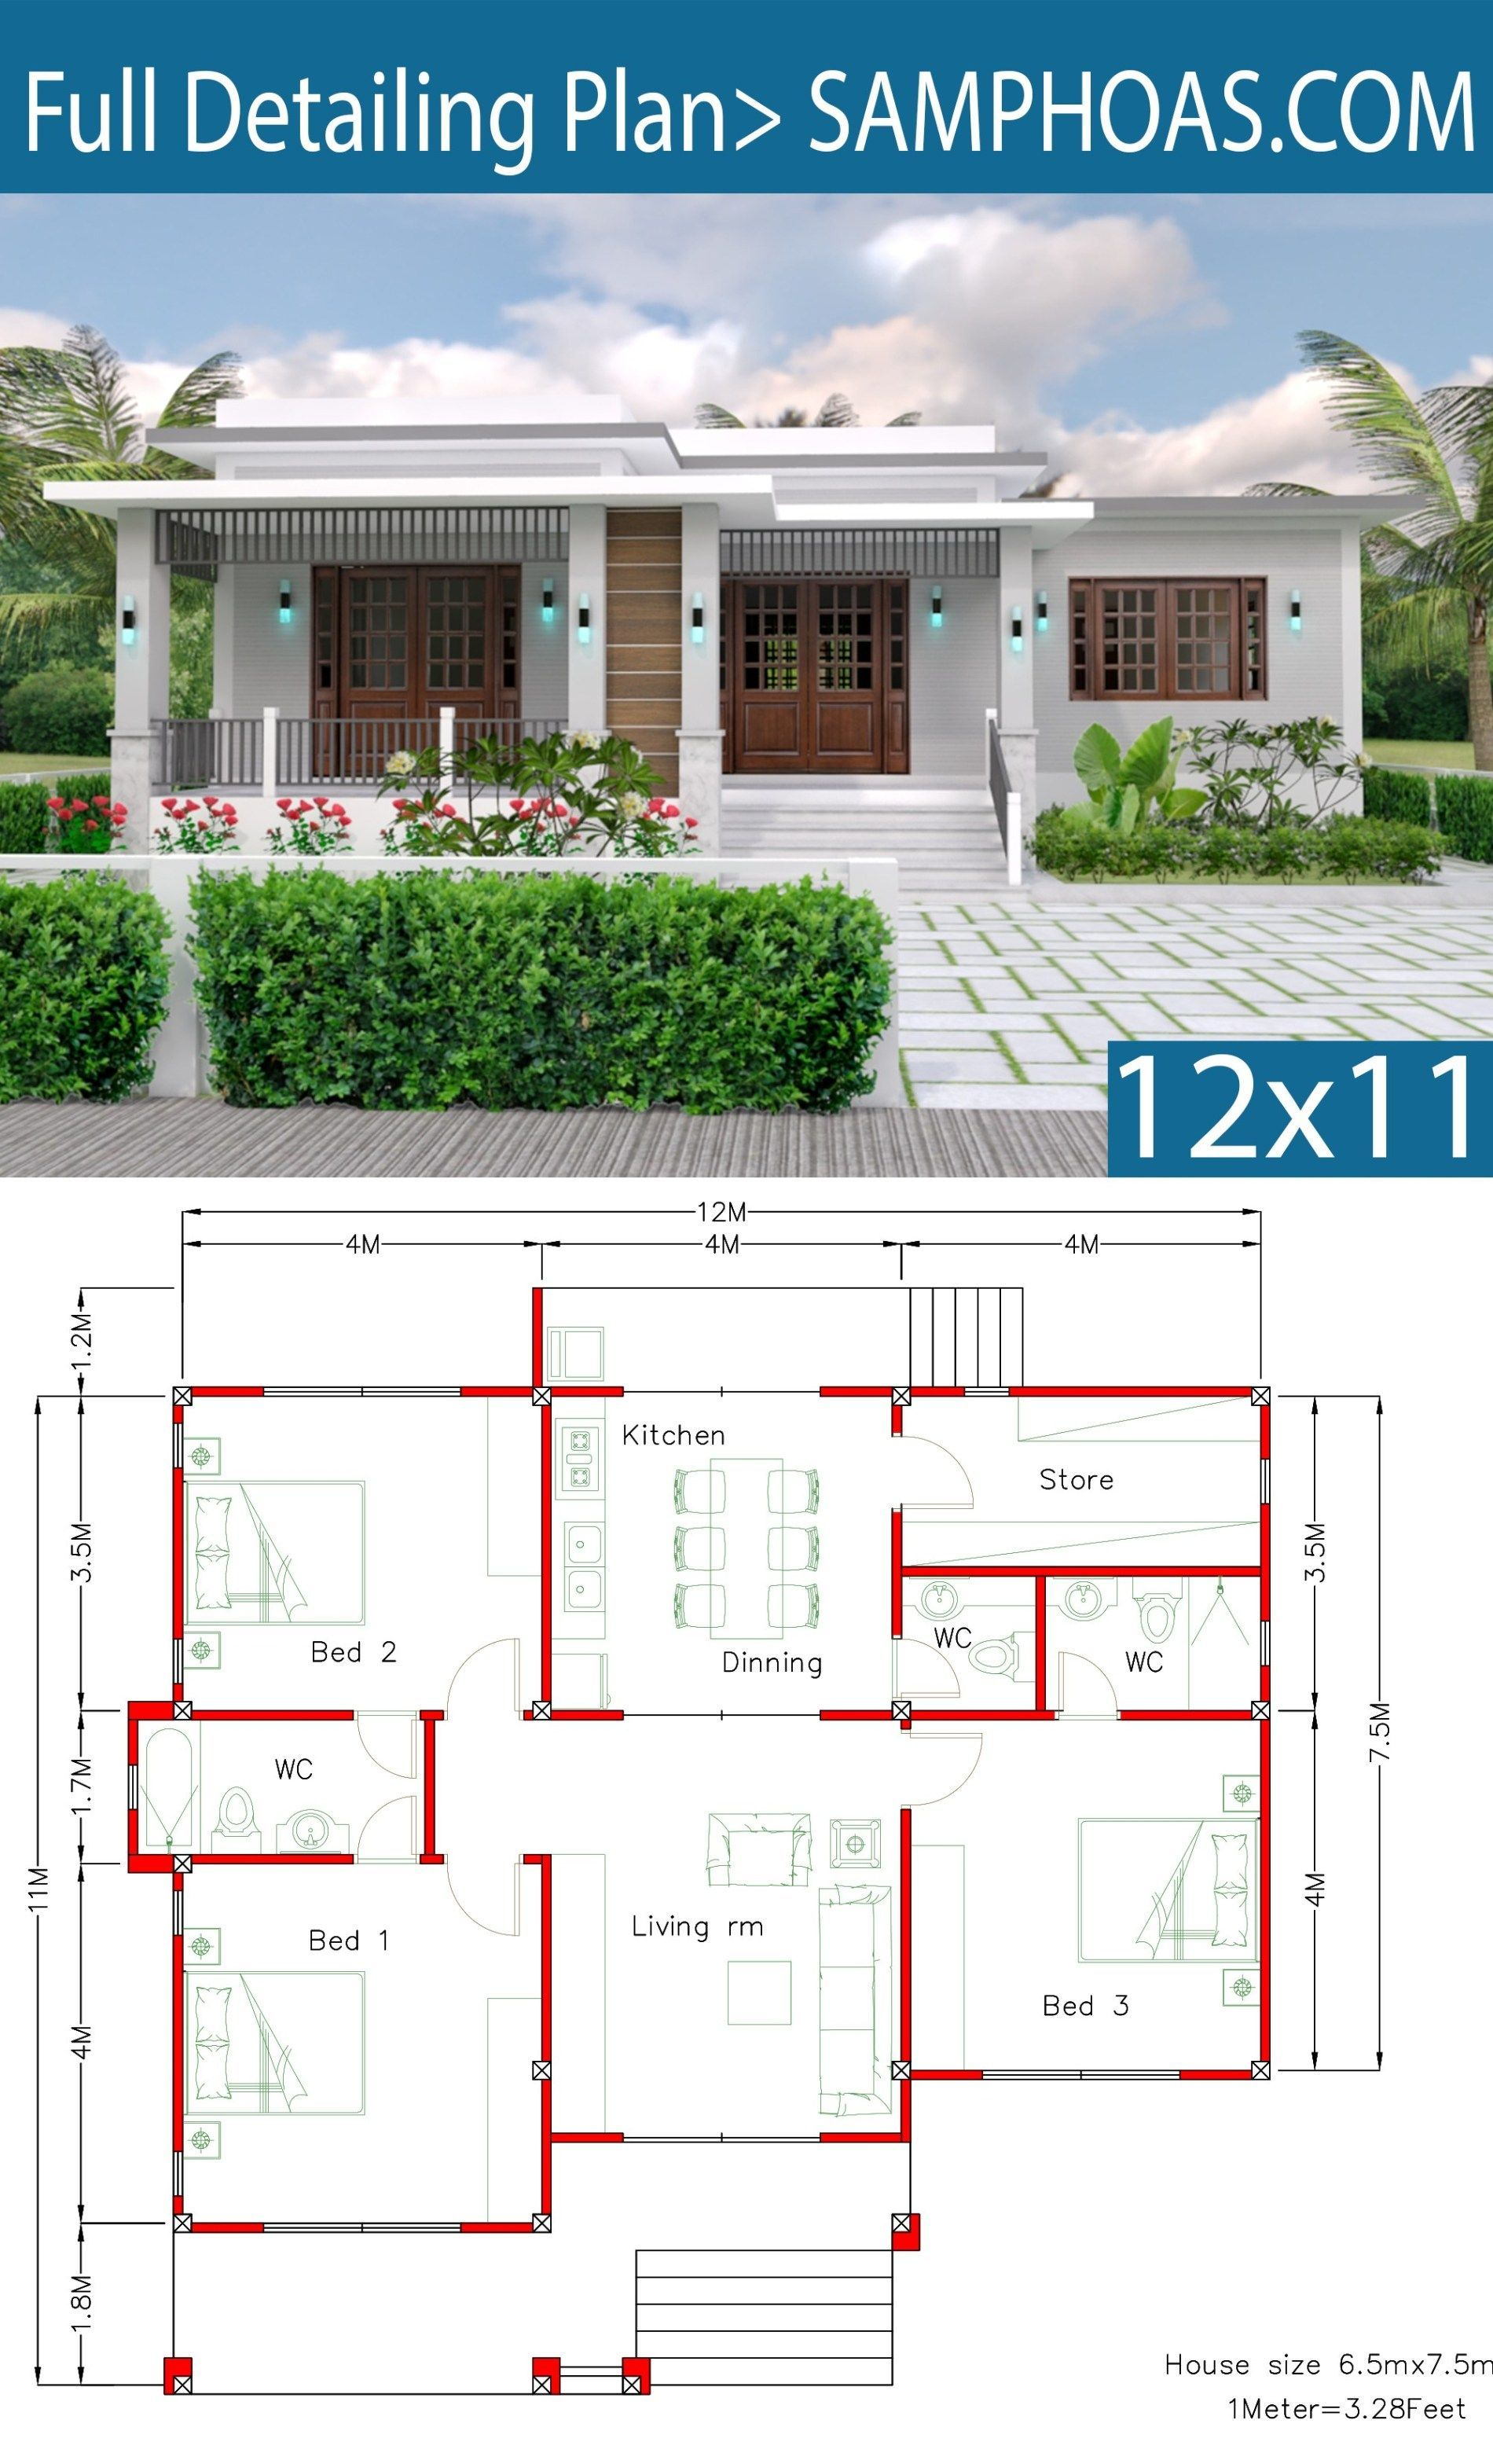 House Plans 12x11m With 3 Bedrooms Sam House Plans Simple House Design House Plans Beautiful House Plans